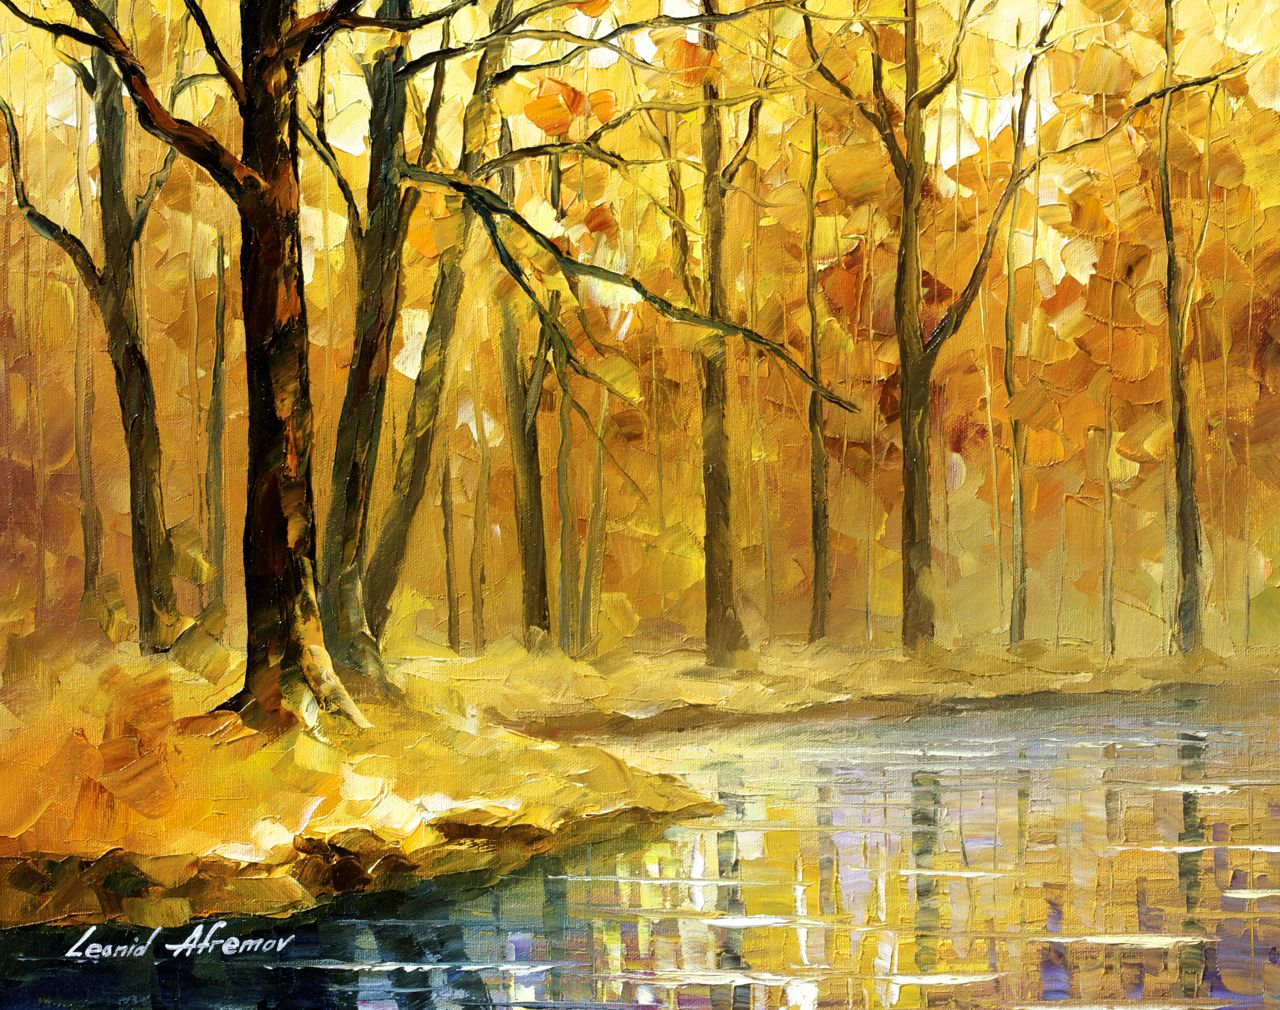 "STREAM IN THE FOREST - Original Oil Painting On Canvas By Leonid Afremov - 20""X16"""